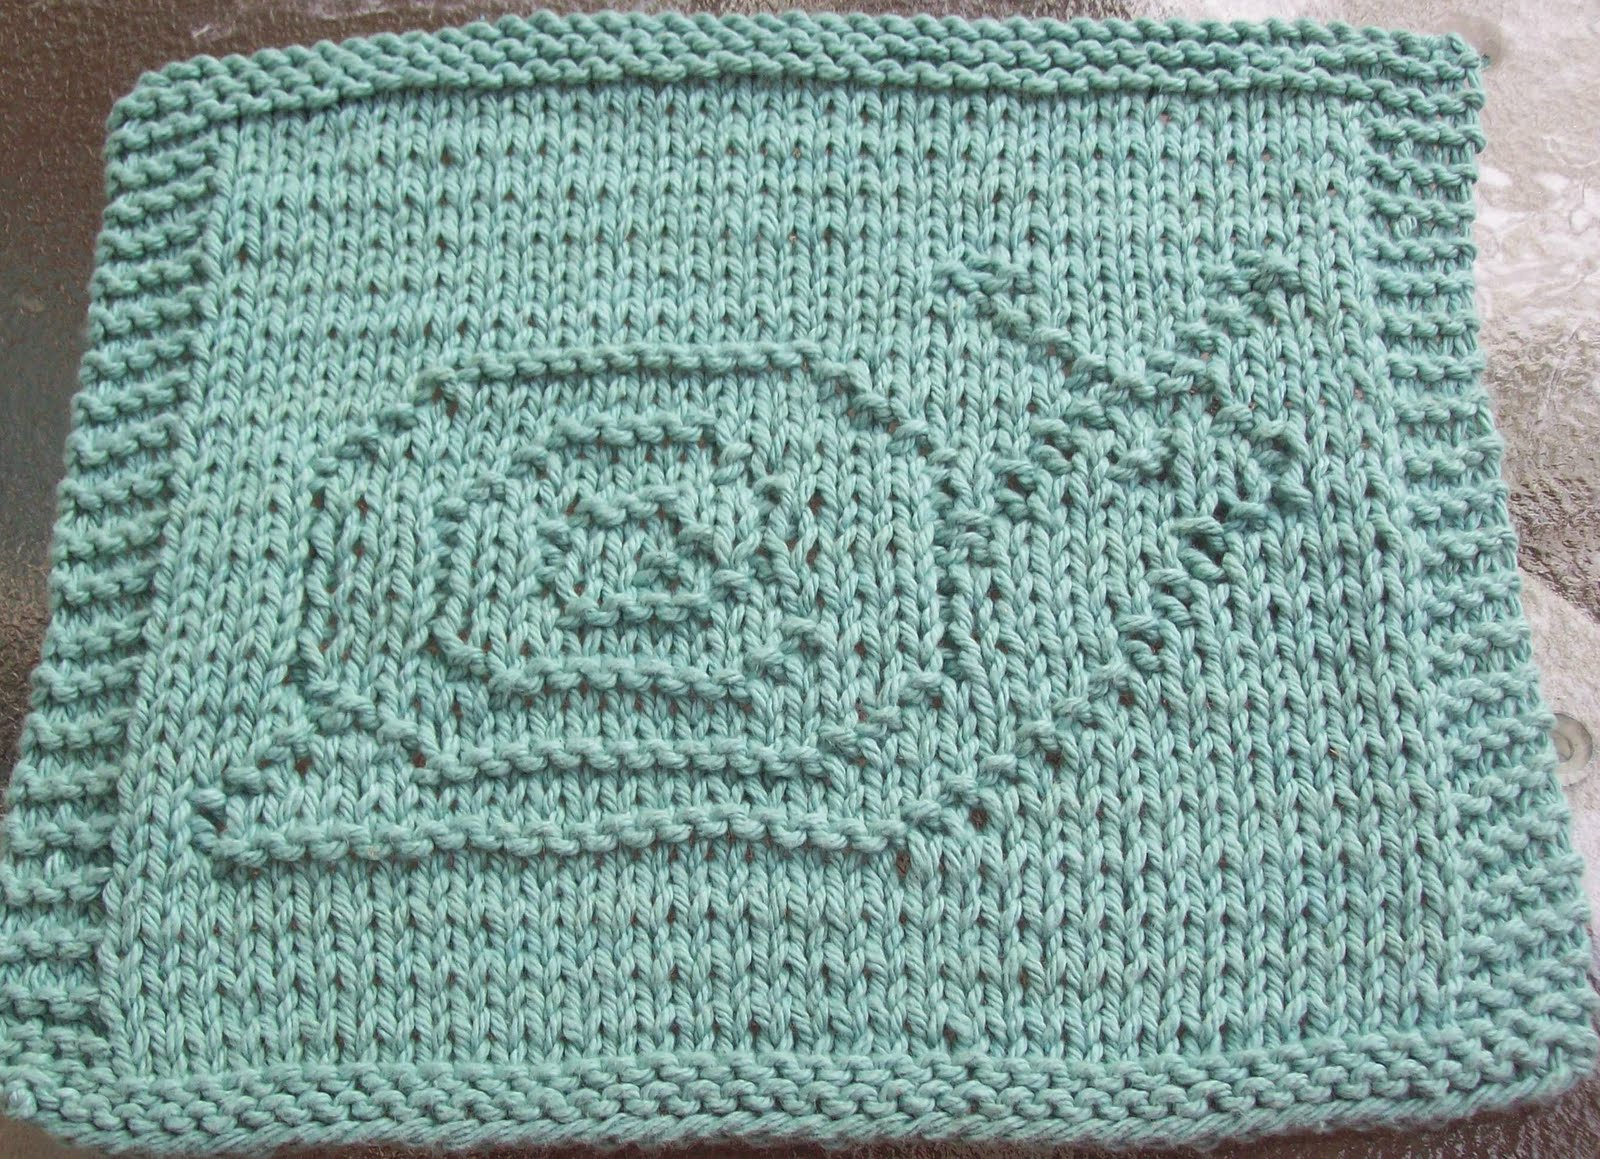 Knitting Crochet Patterns : Knitted Dishcloth Patterns A Knitting Blog